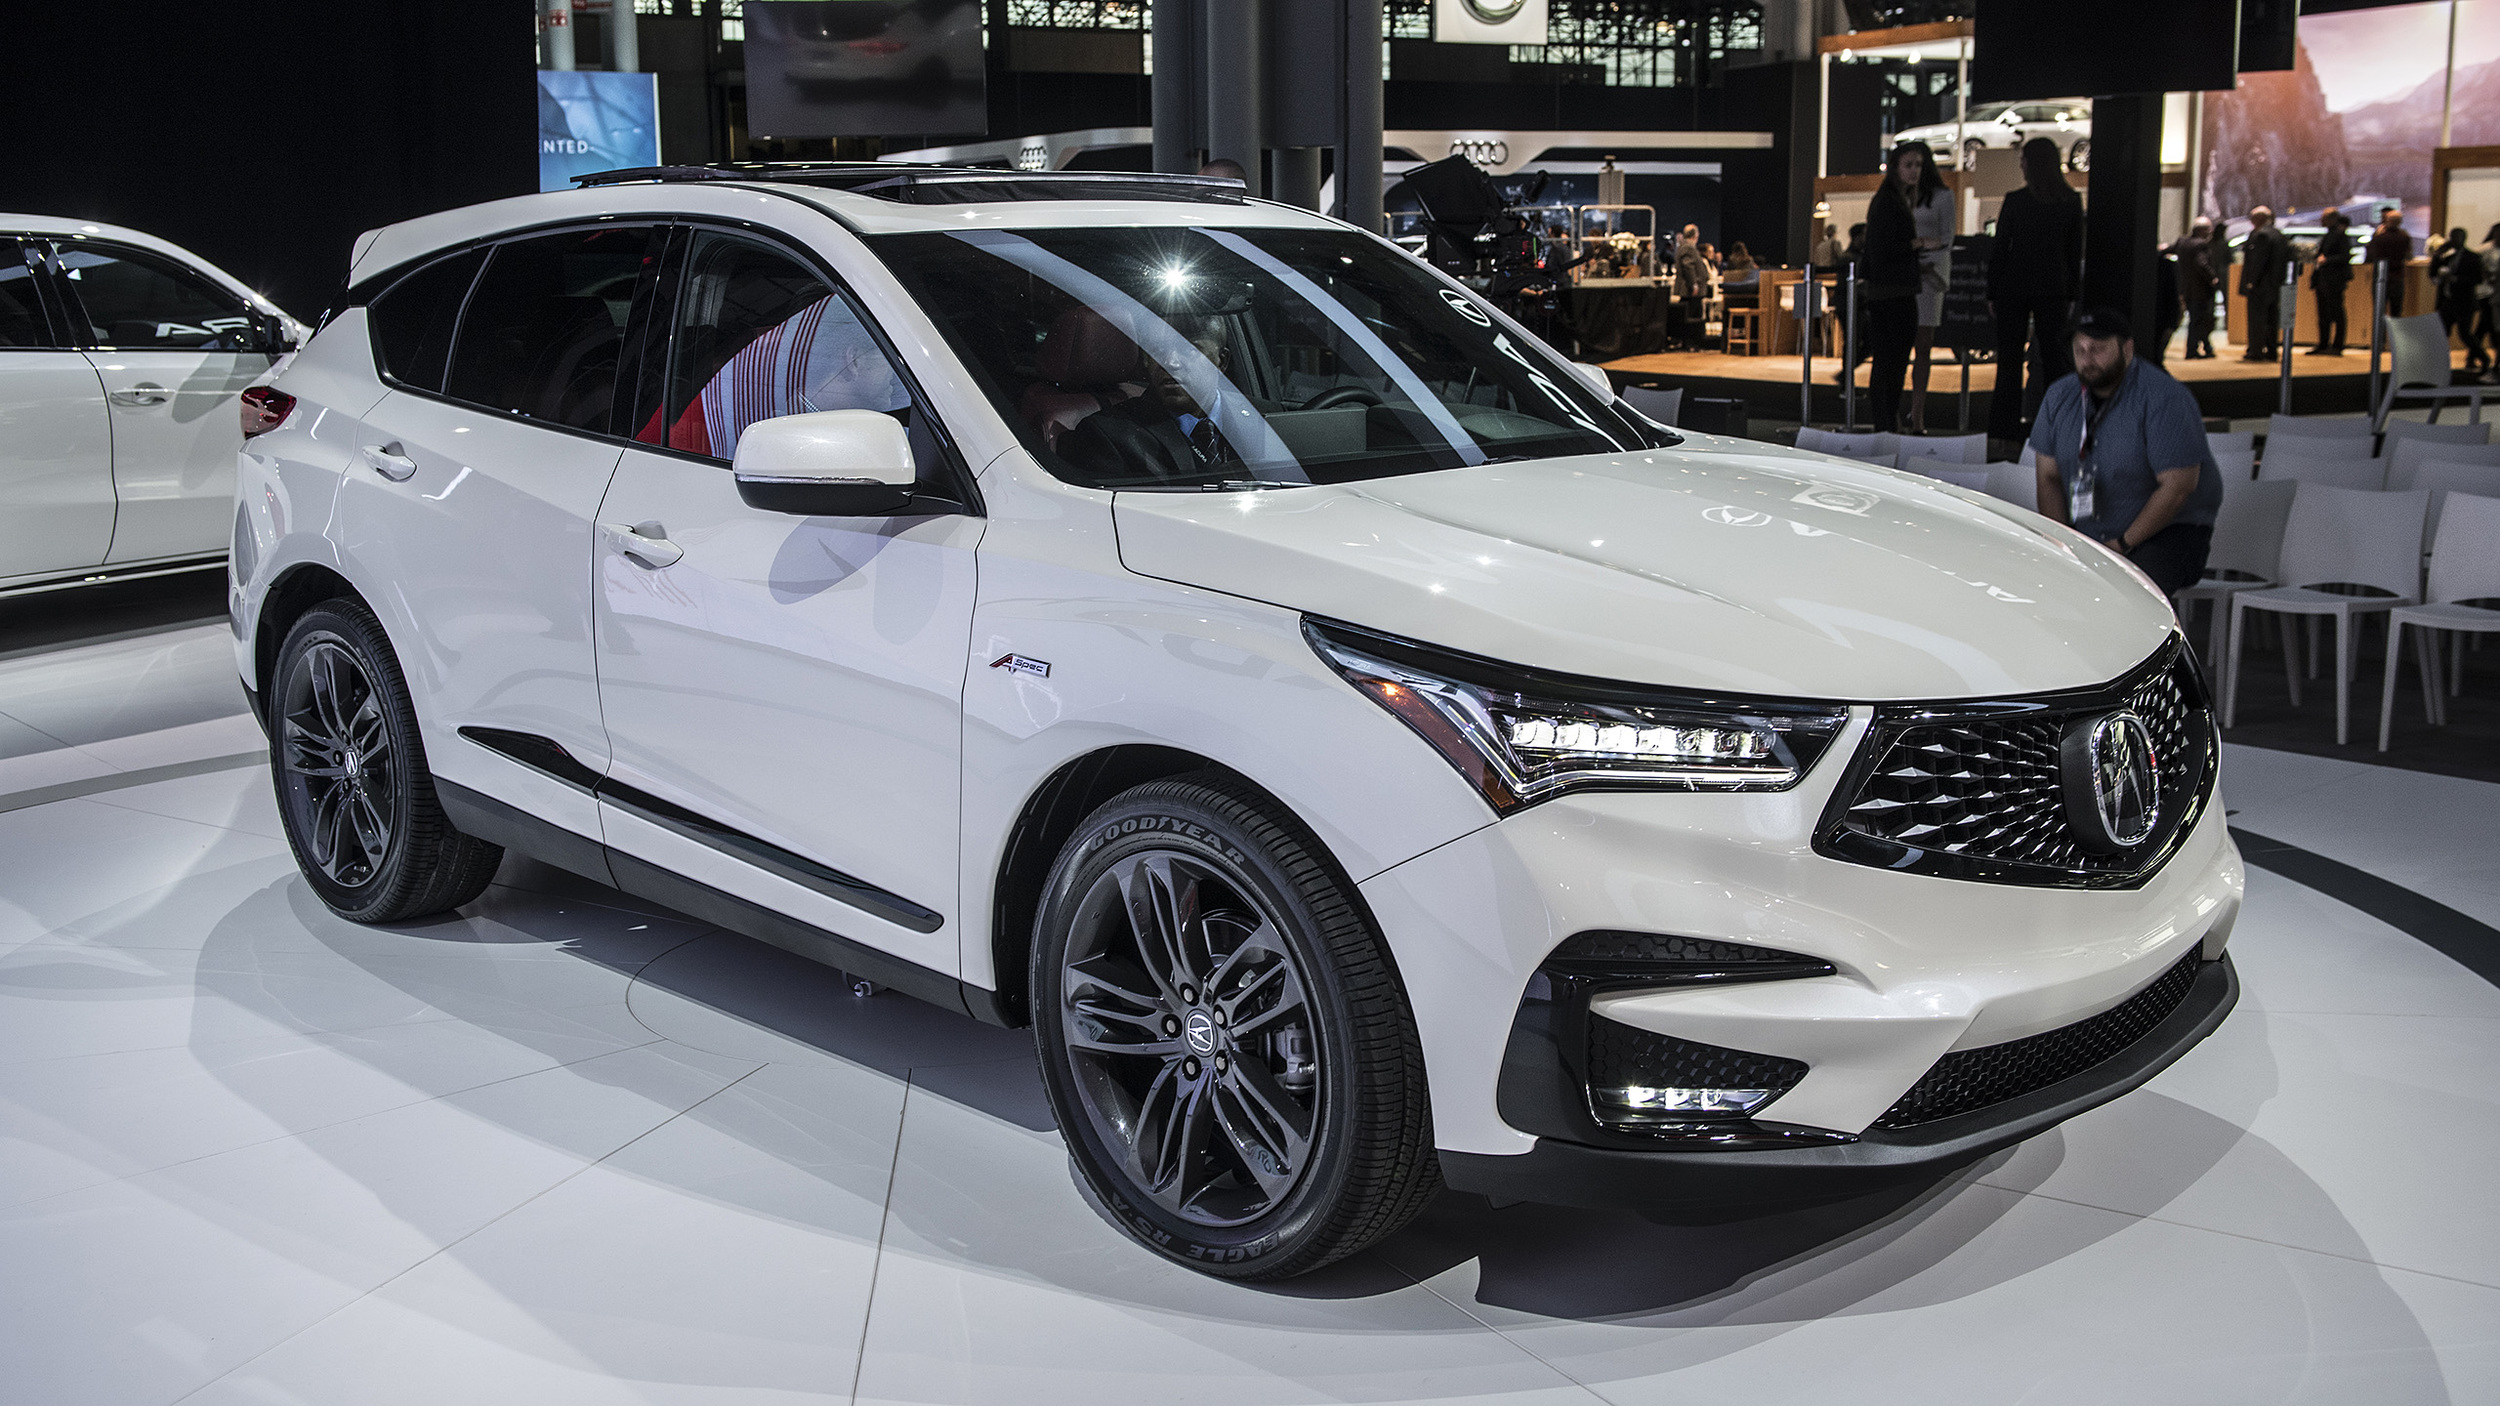 acura zdx 2010 with 2019 Acura Rdx A Spec New York 2018 0 on Few Mods 2015 Mdx 936255 besides Zdx Oem 20s Black 865663 as well Wallpaper 0e together with Wallpaper 24 moreover Wallpaper 28.